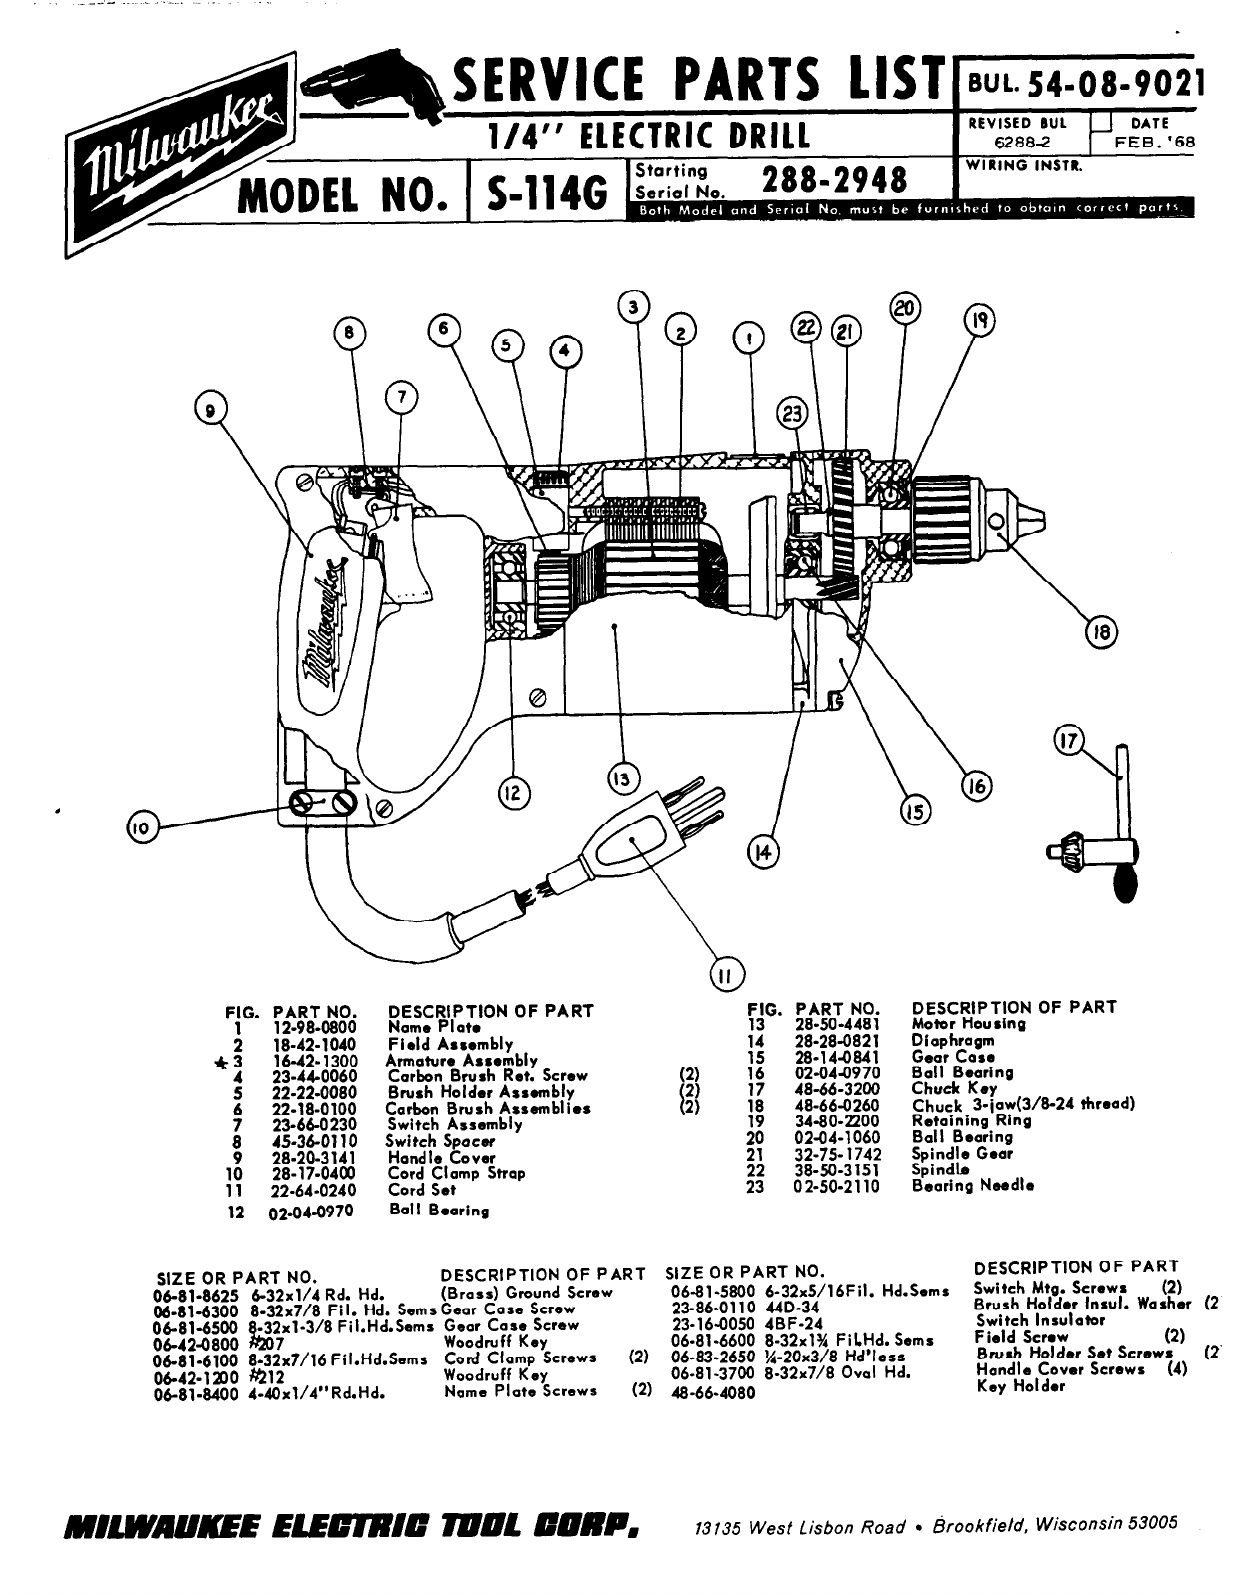 [DIAGRAM] Typical Electric Drill Switch Wiring Diagram